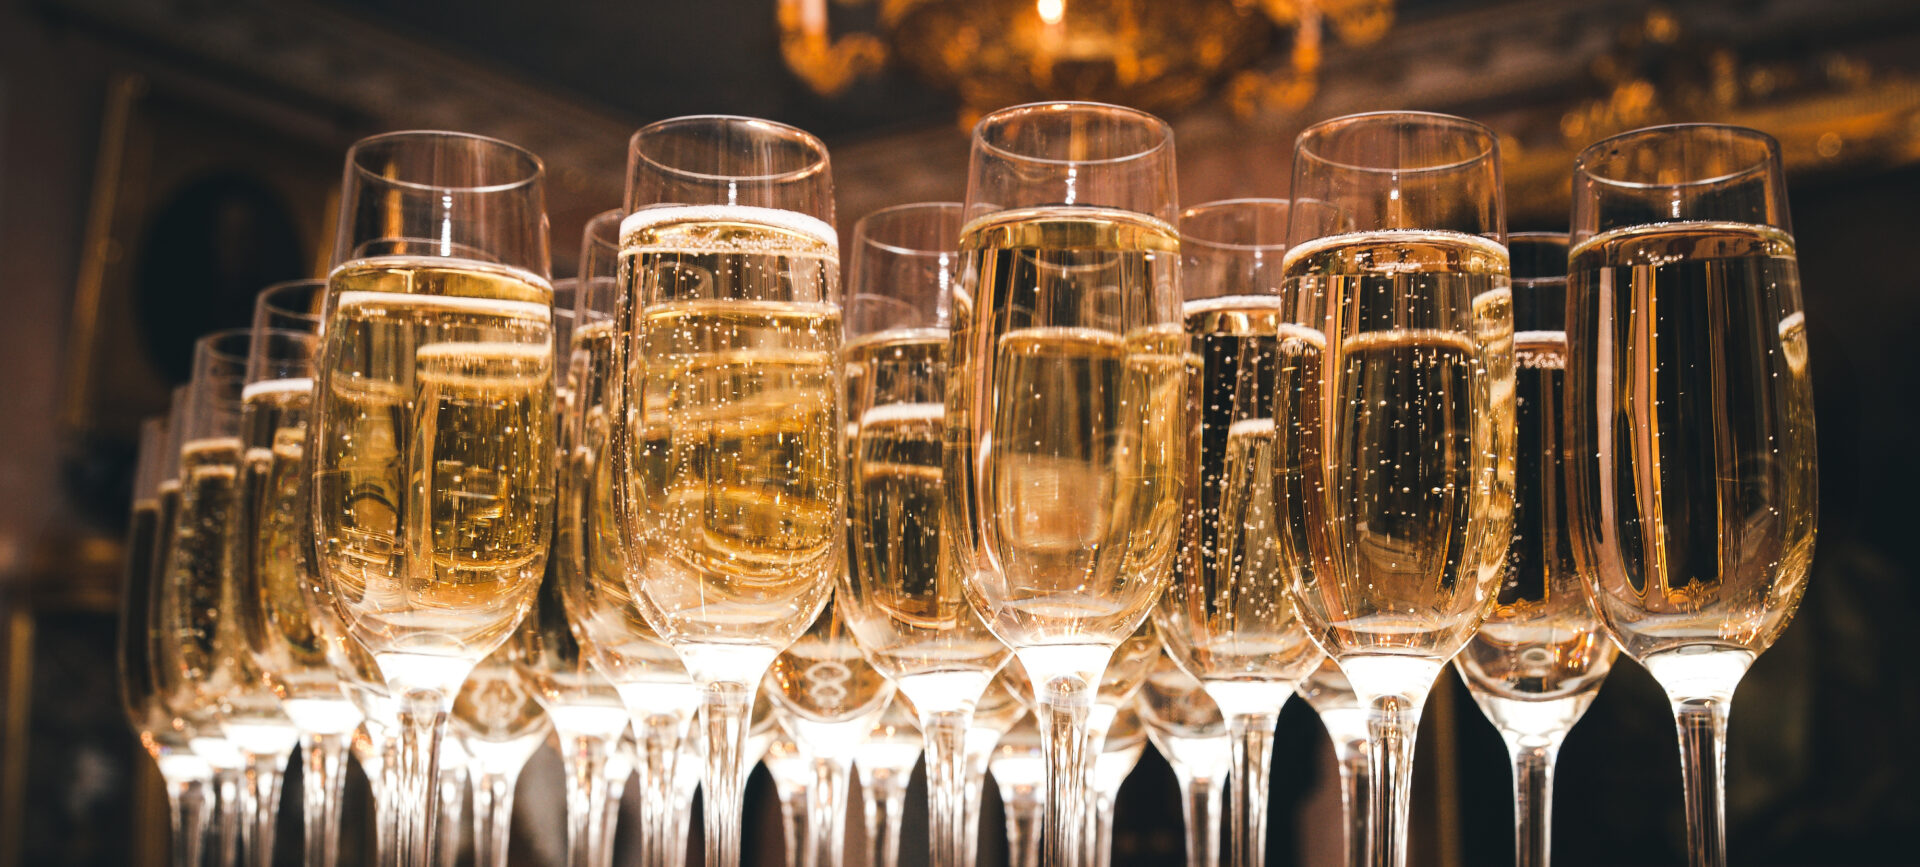 a-lot-of-glasses-of-champagne-in-a-luxurious-atmosphere-stylish-toned-photo-secular-reception-new-year-wedding